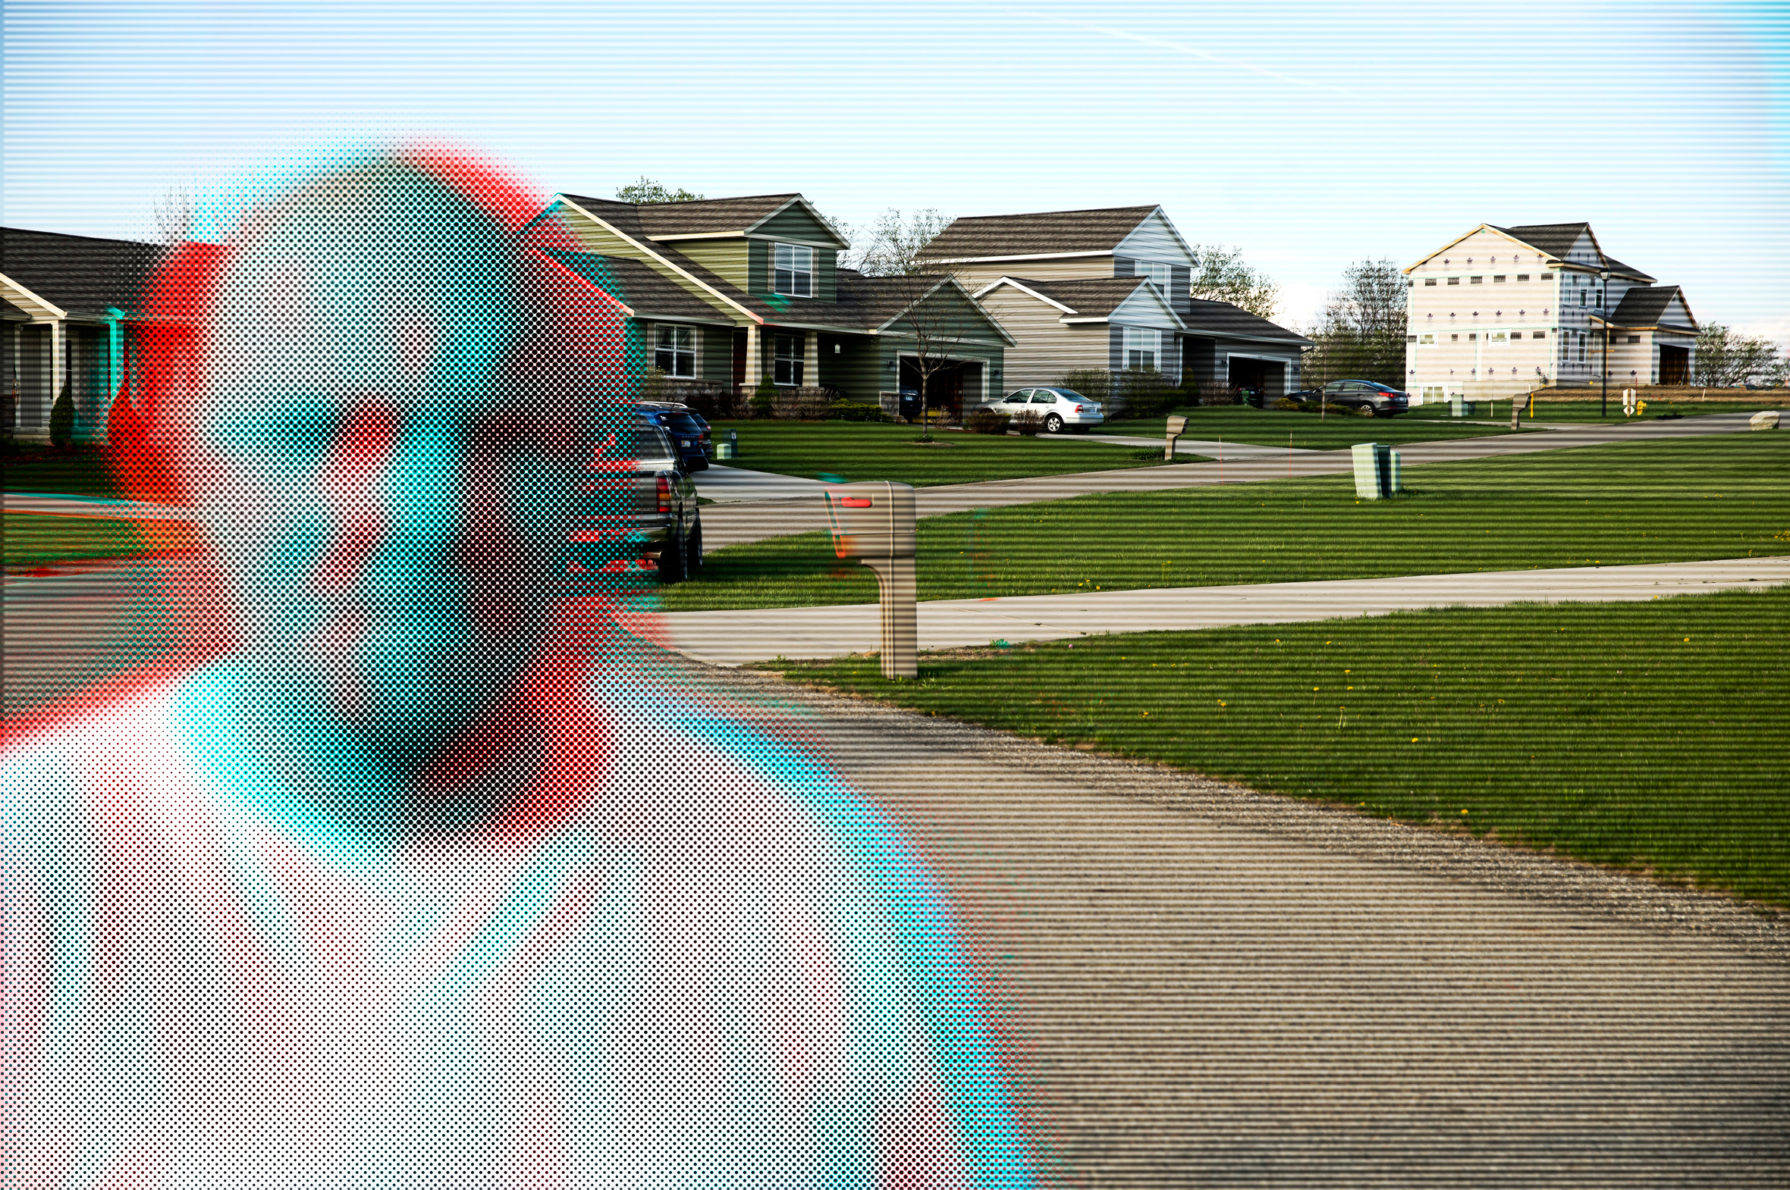 A pixellated man stands in front of a suburban neighborhood